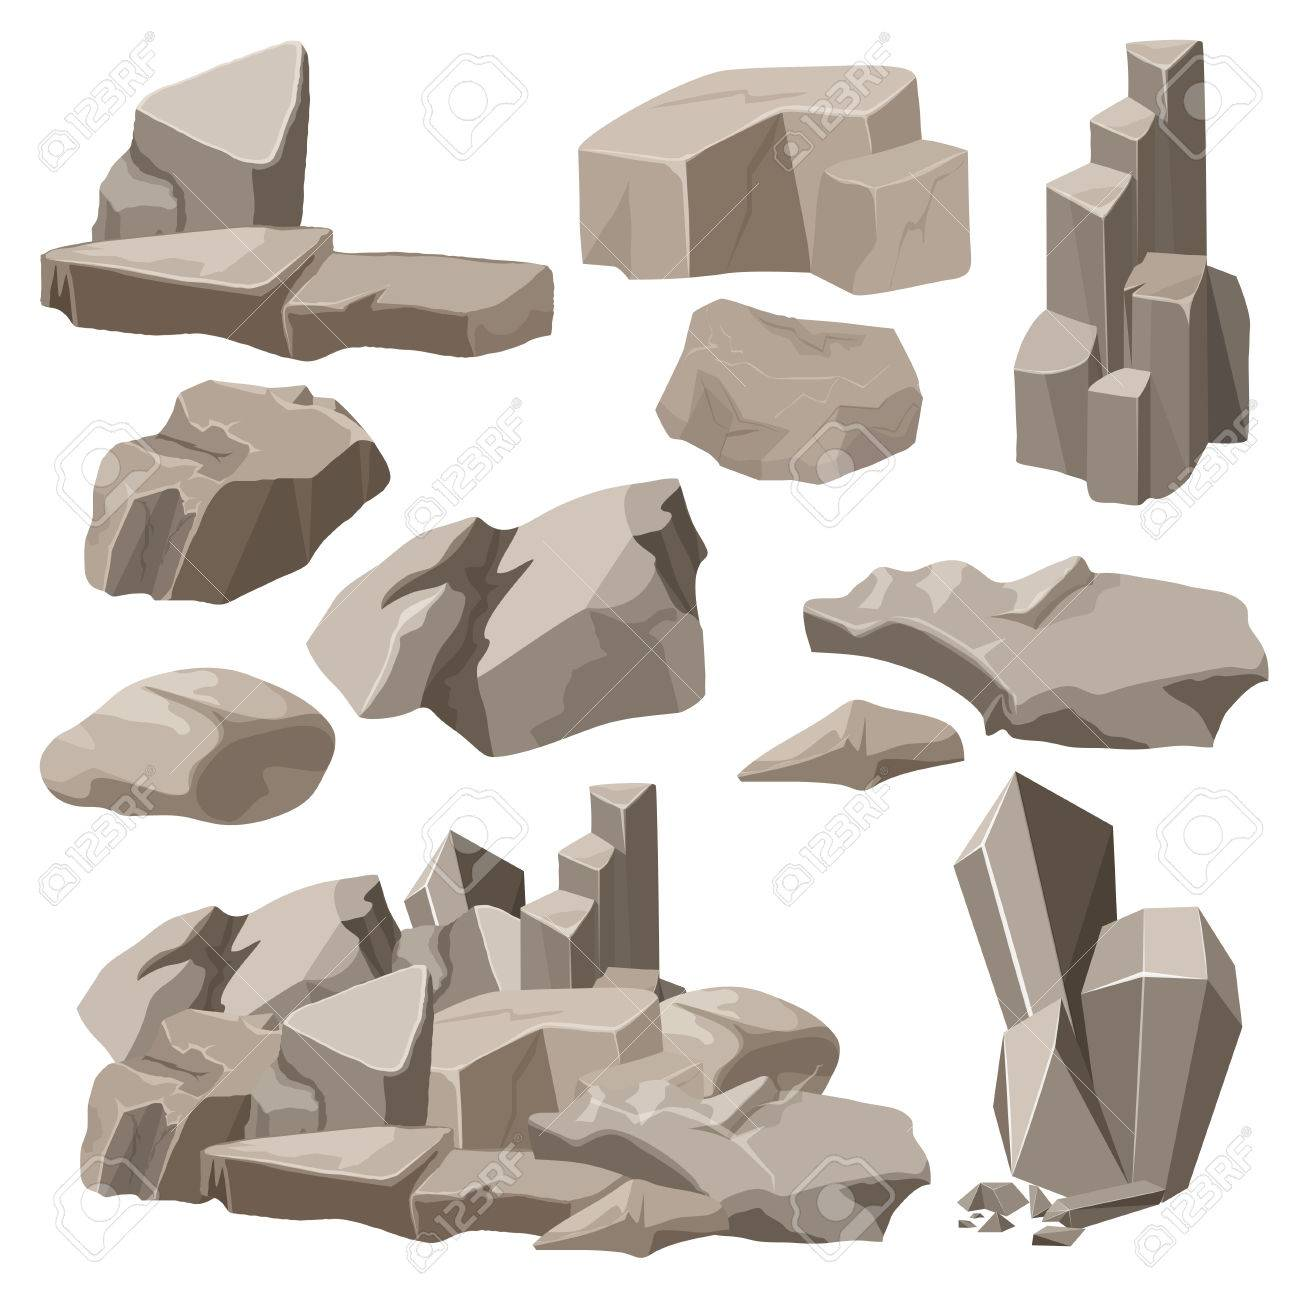 Rocks and stones elements collection set. Vector illustration - 56606867